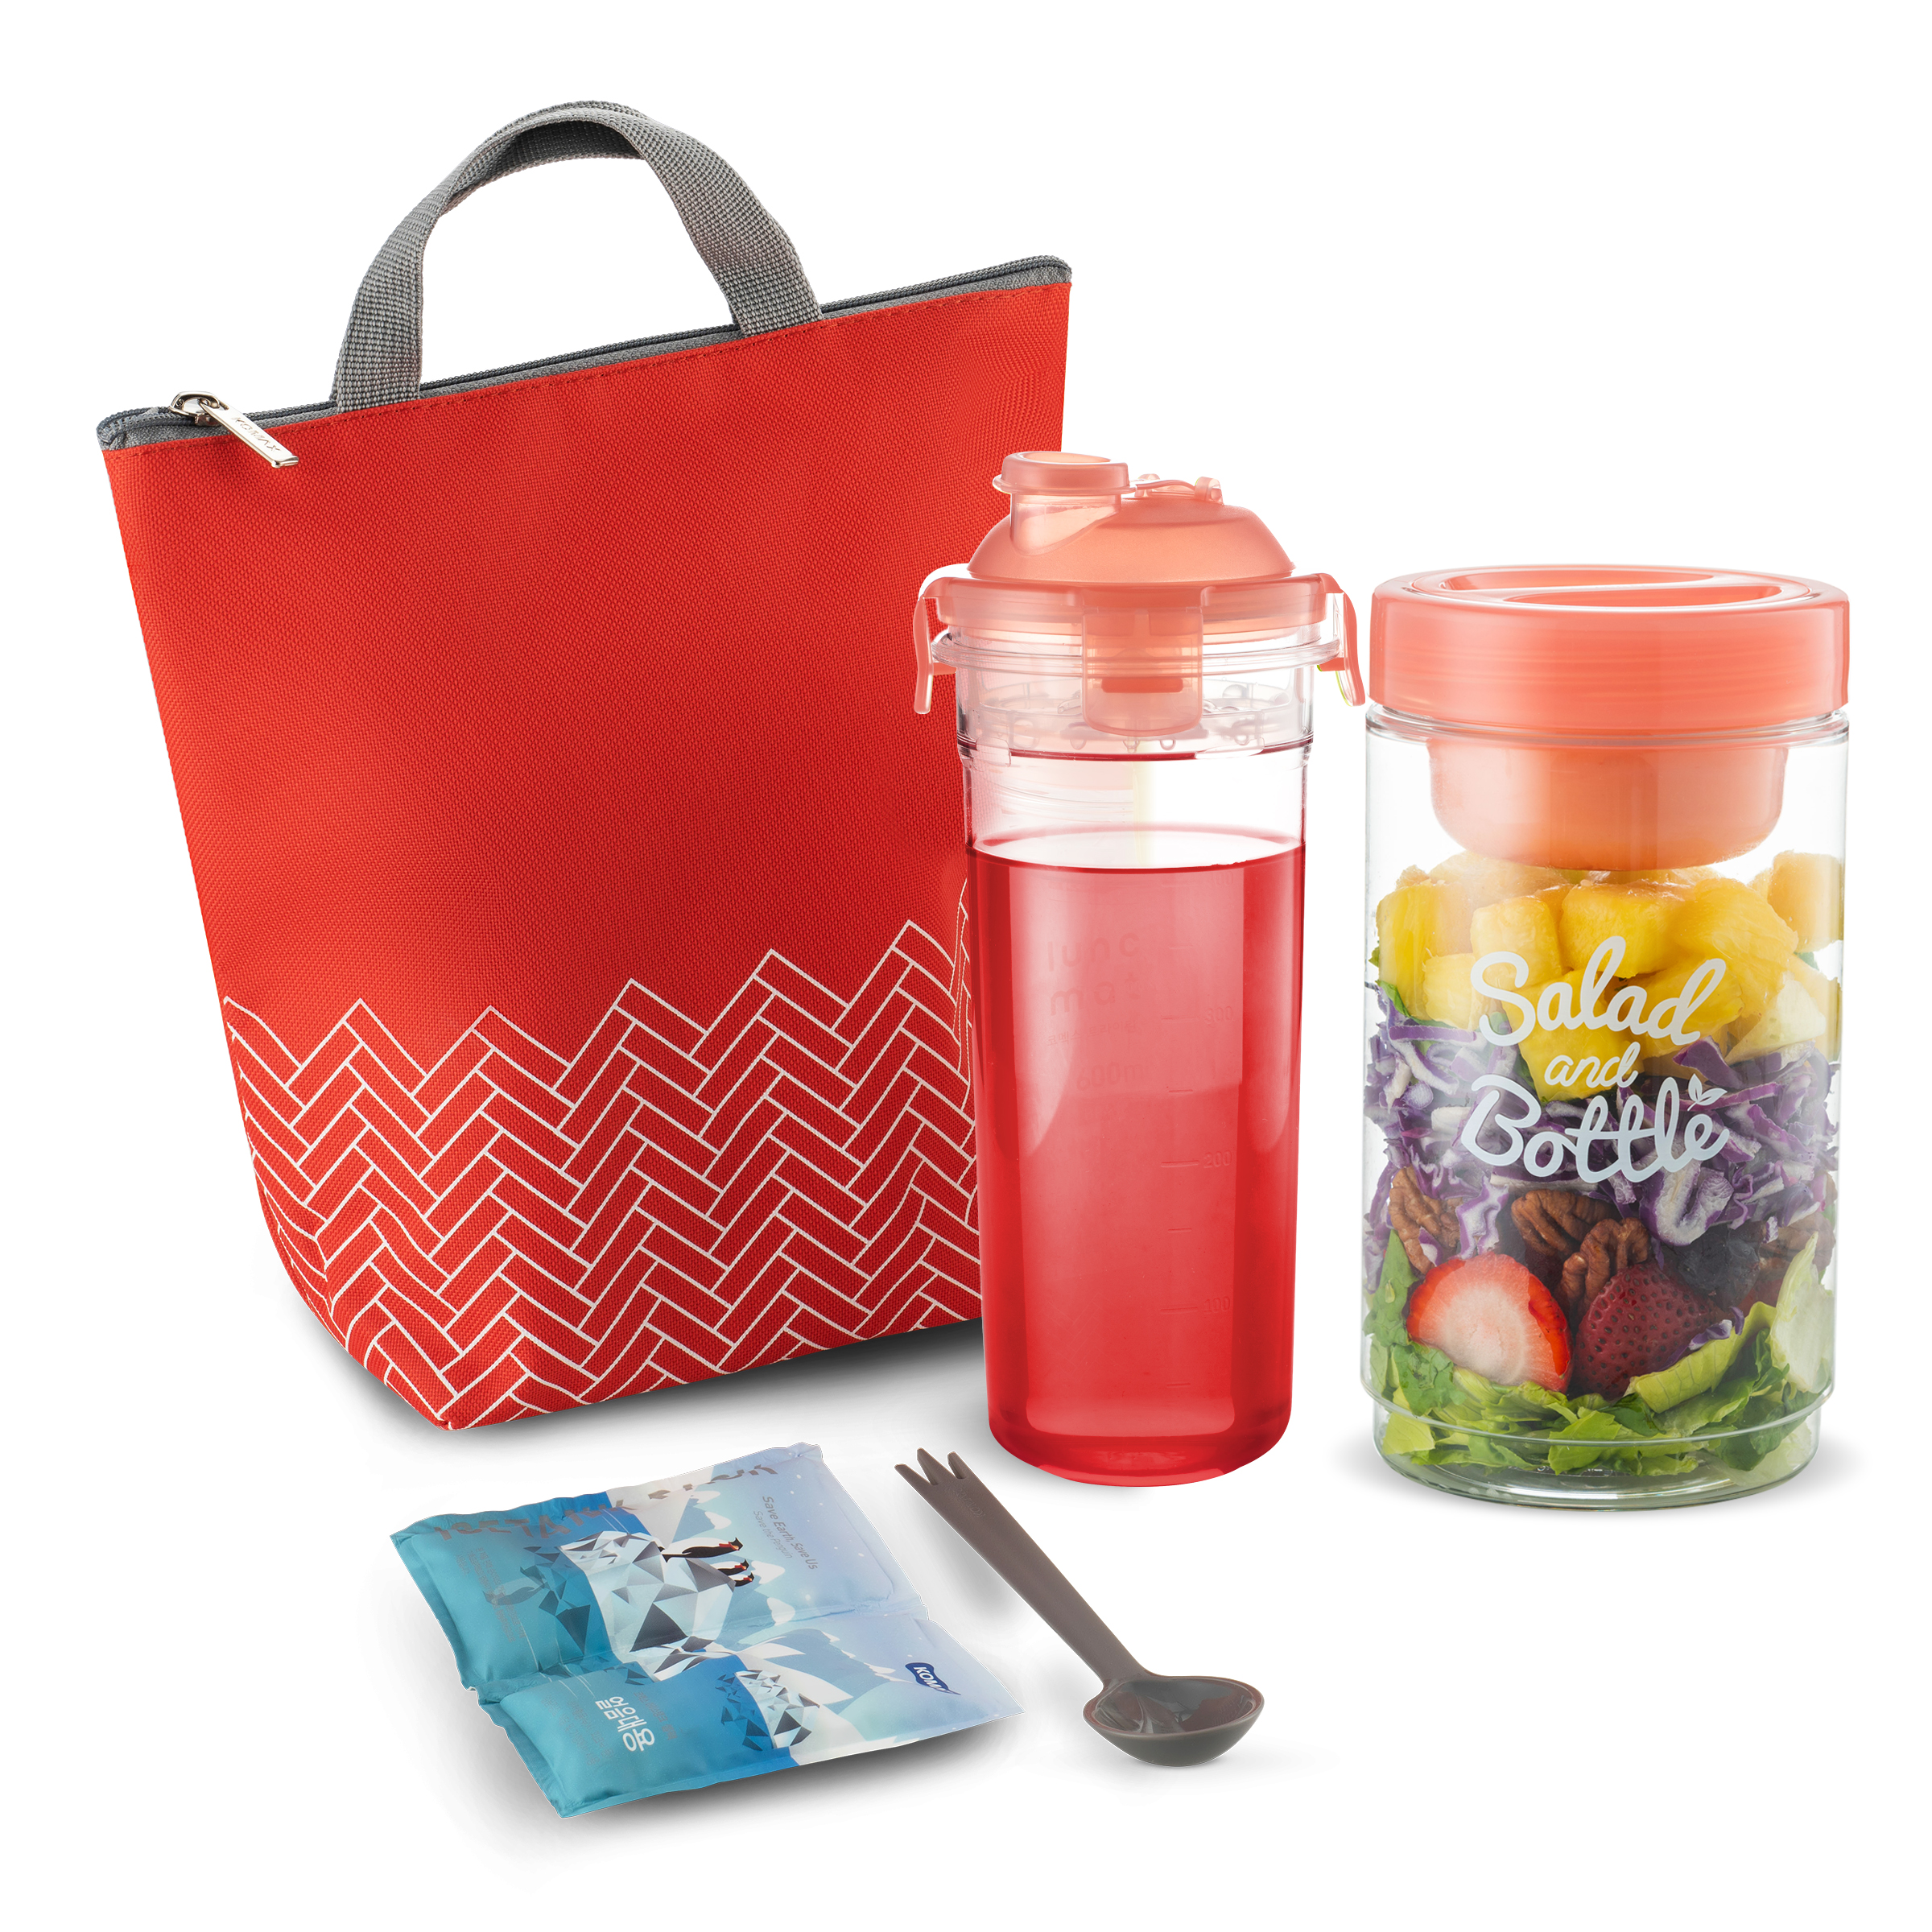 Komax Insulated Lunch Bag For Women - Cute Lunch Box Set - Waterproof Lunch Bag for Ladies (small), Reusable Salad Container (33-oz), Matching Water Bottle (20-oz), Utensils & Ice Pack - Red